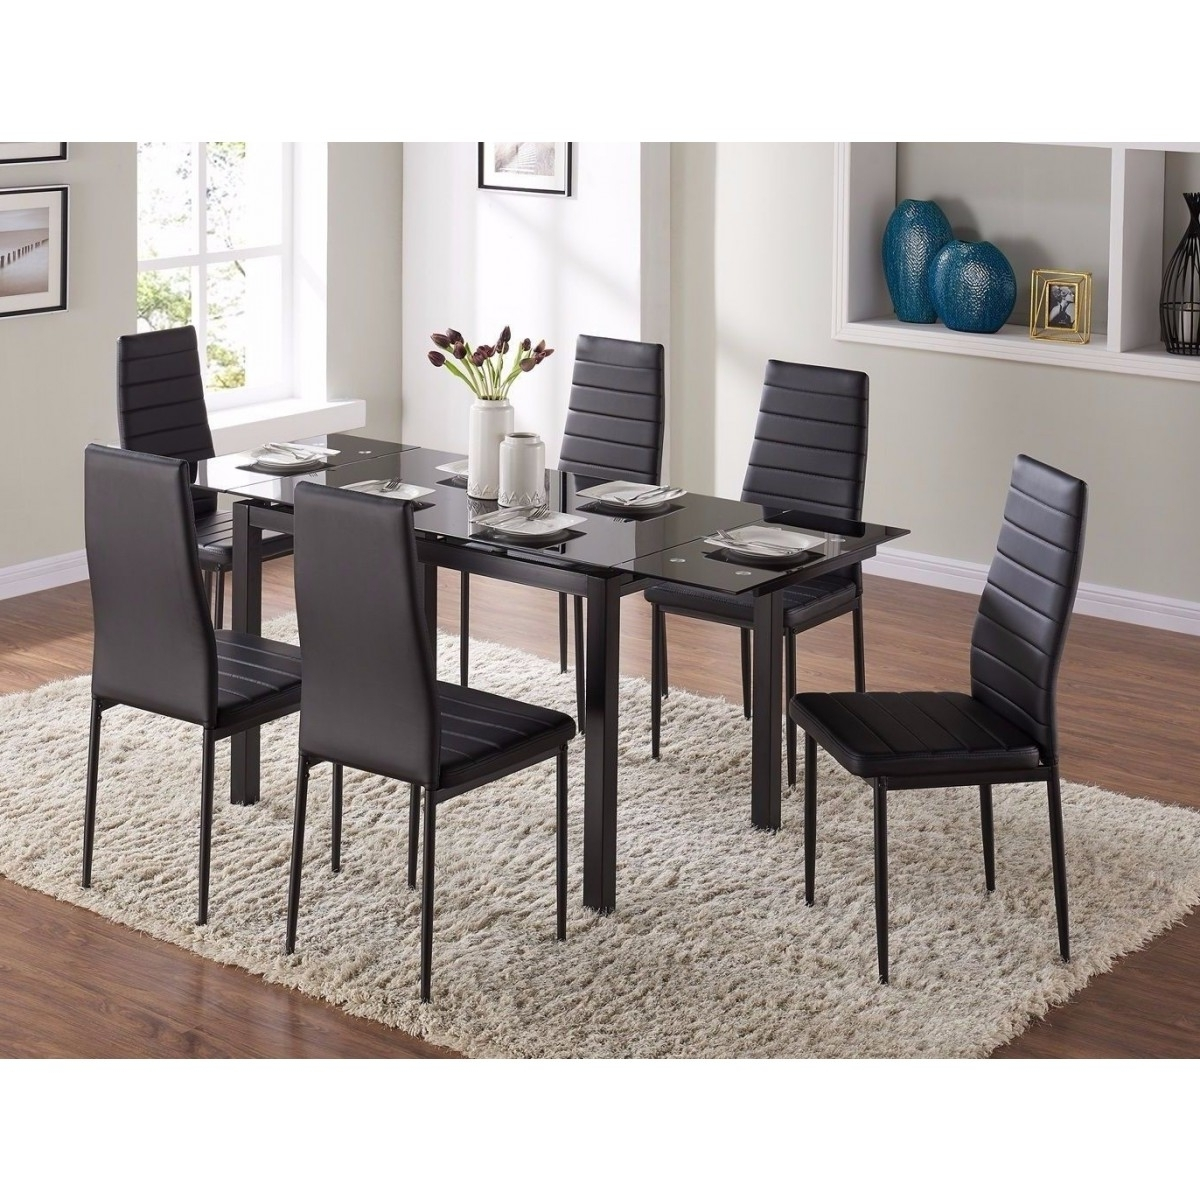 7Pc Extending Glass Dining Table & Black Faux Leather Chairs Set Intended For Preferred Glass Dining Tables And Leather Chairs (View 12 of 25)